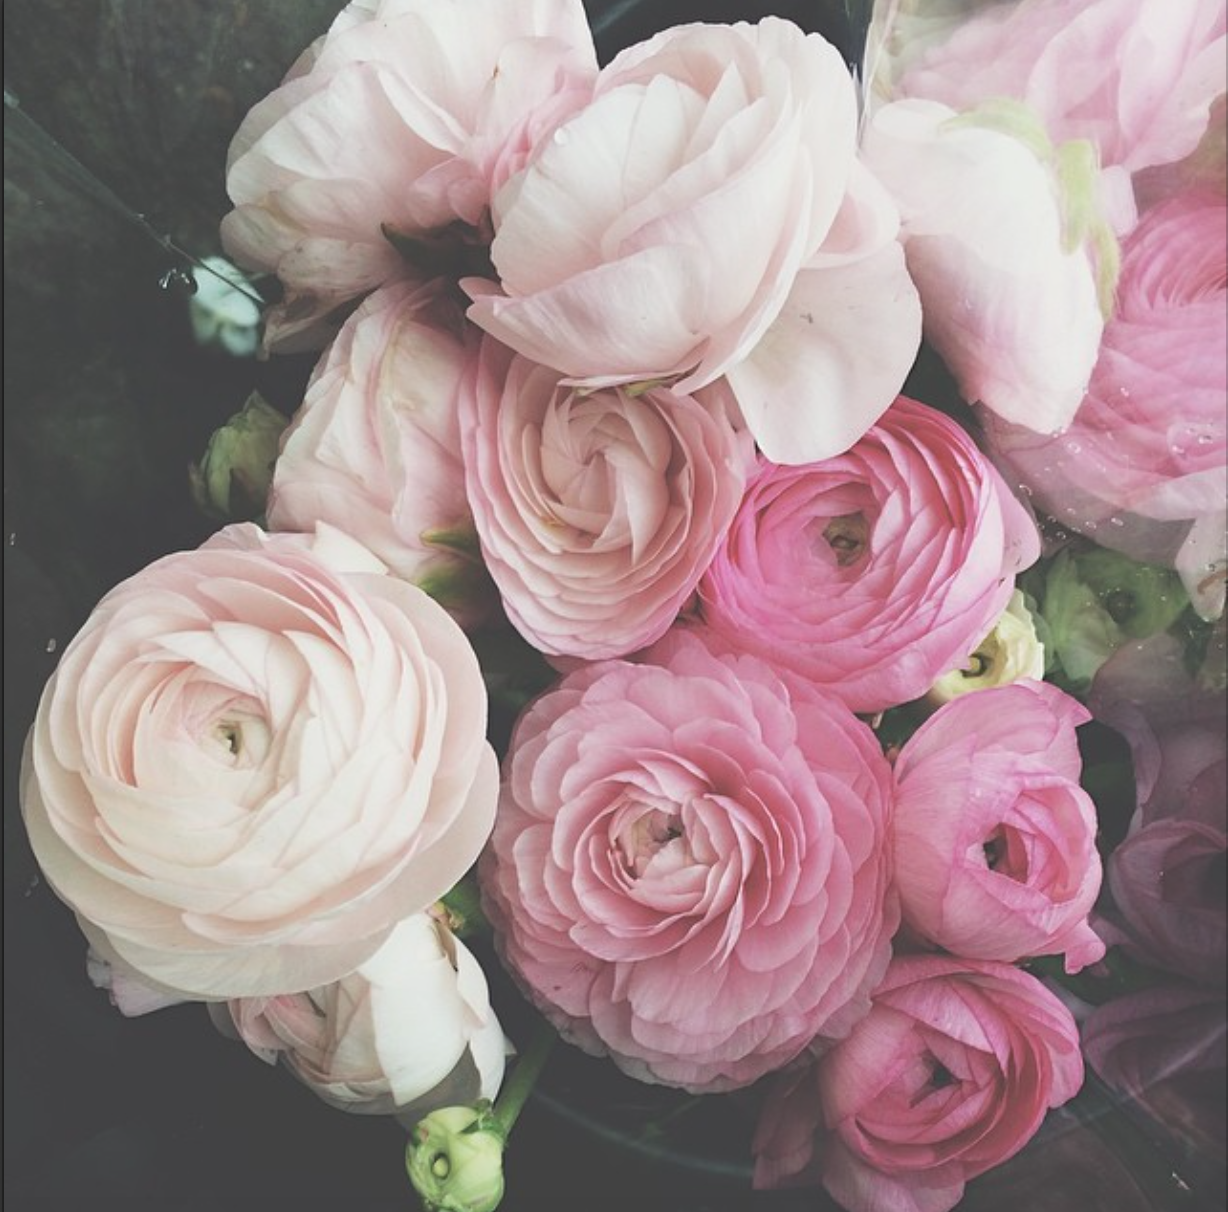 My funny valentine, a playlist for that special someone